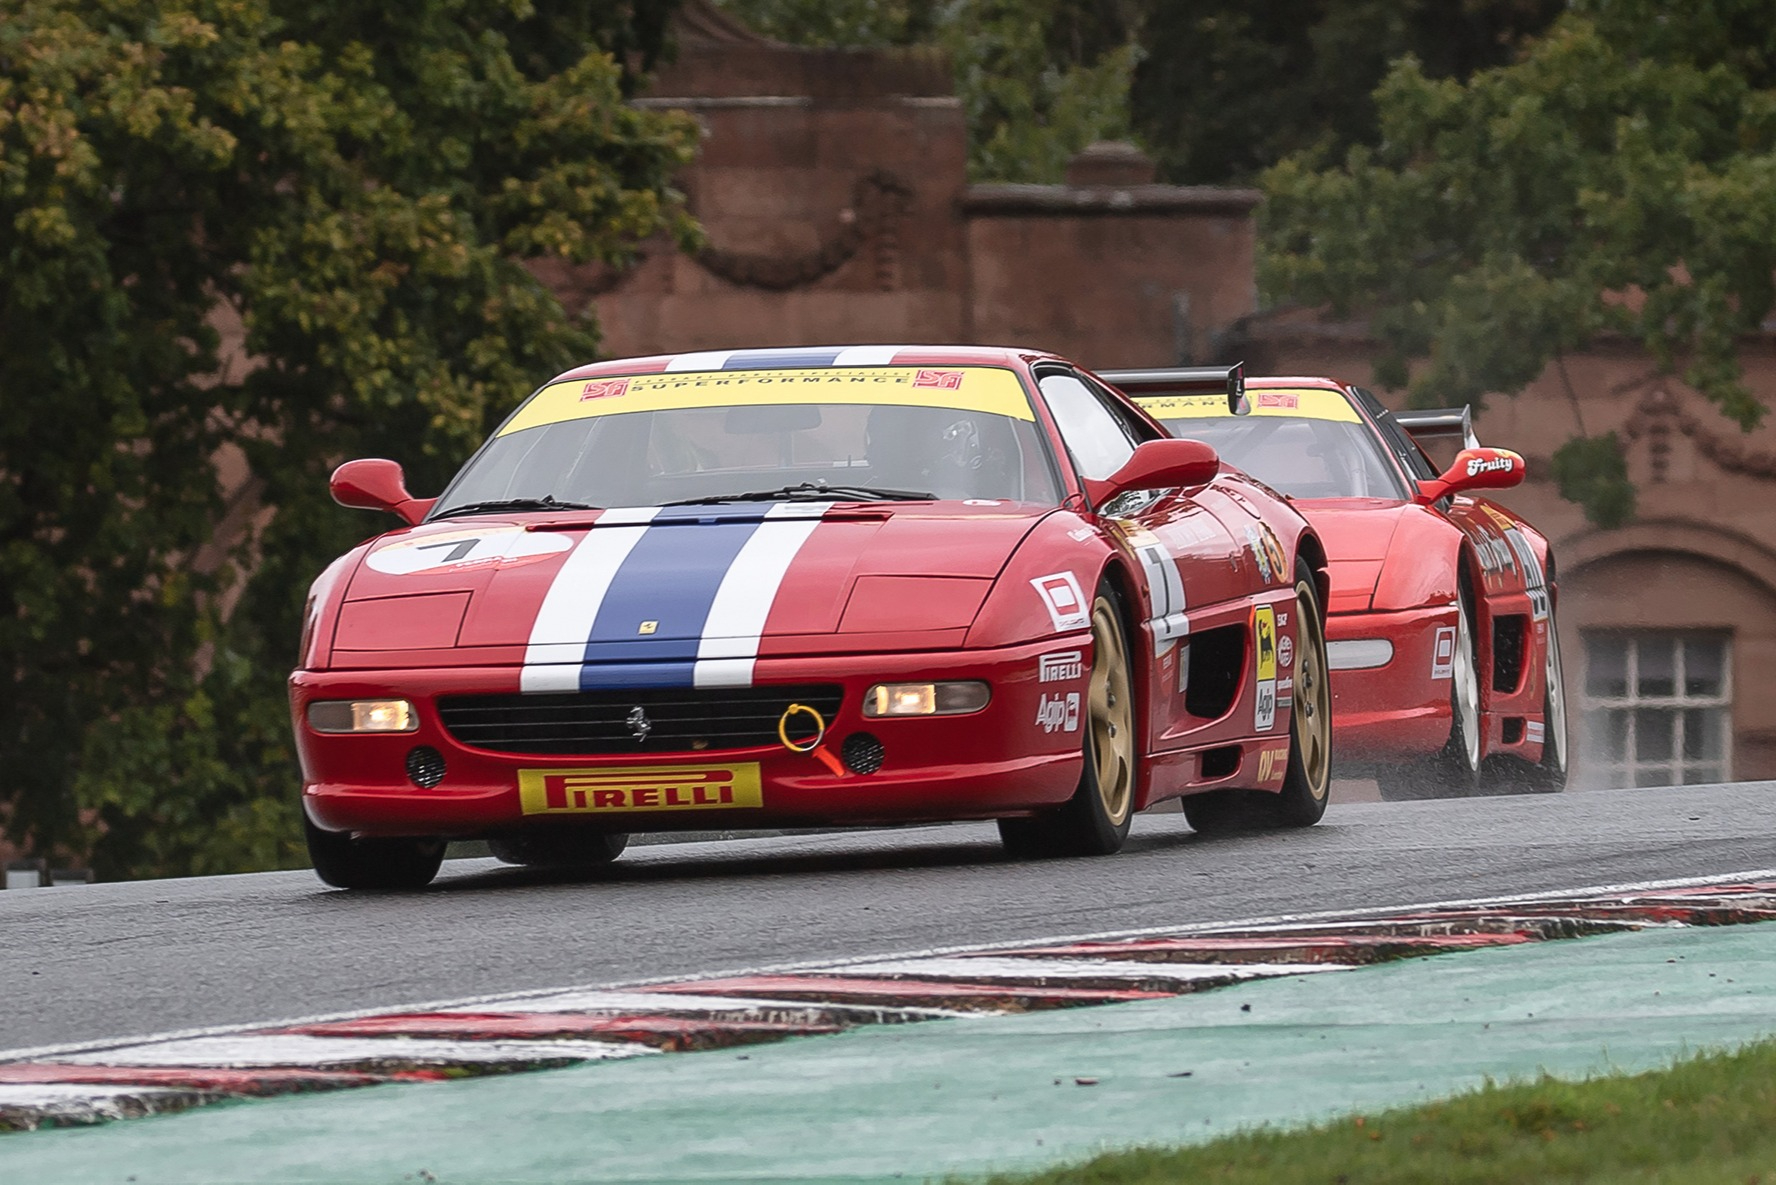 James Little and Wayne Marrs battle it out in the Pirelli Ferrari Formula Classic at Oulton Park